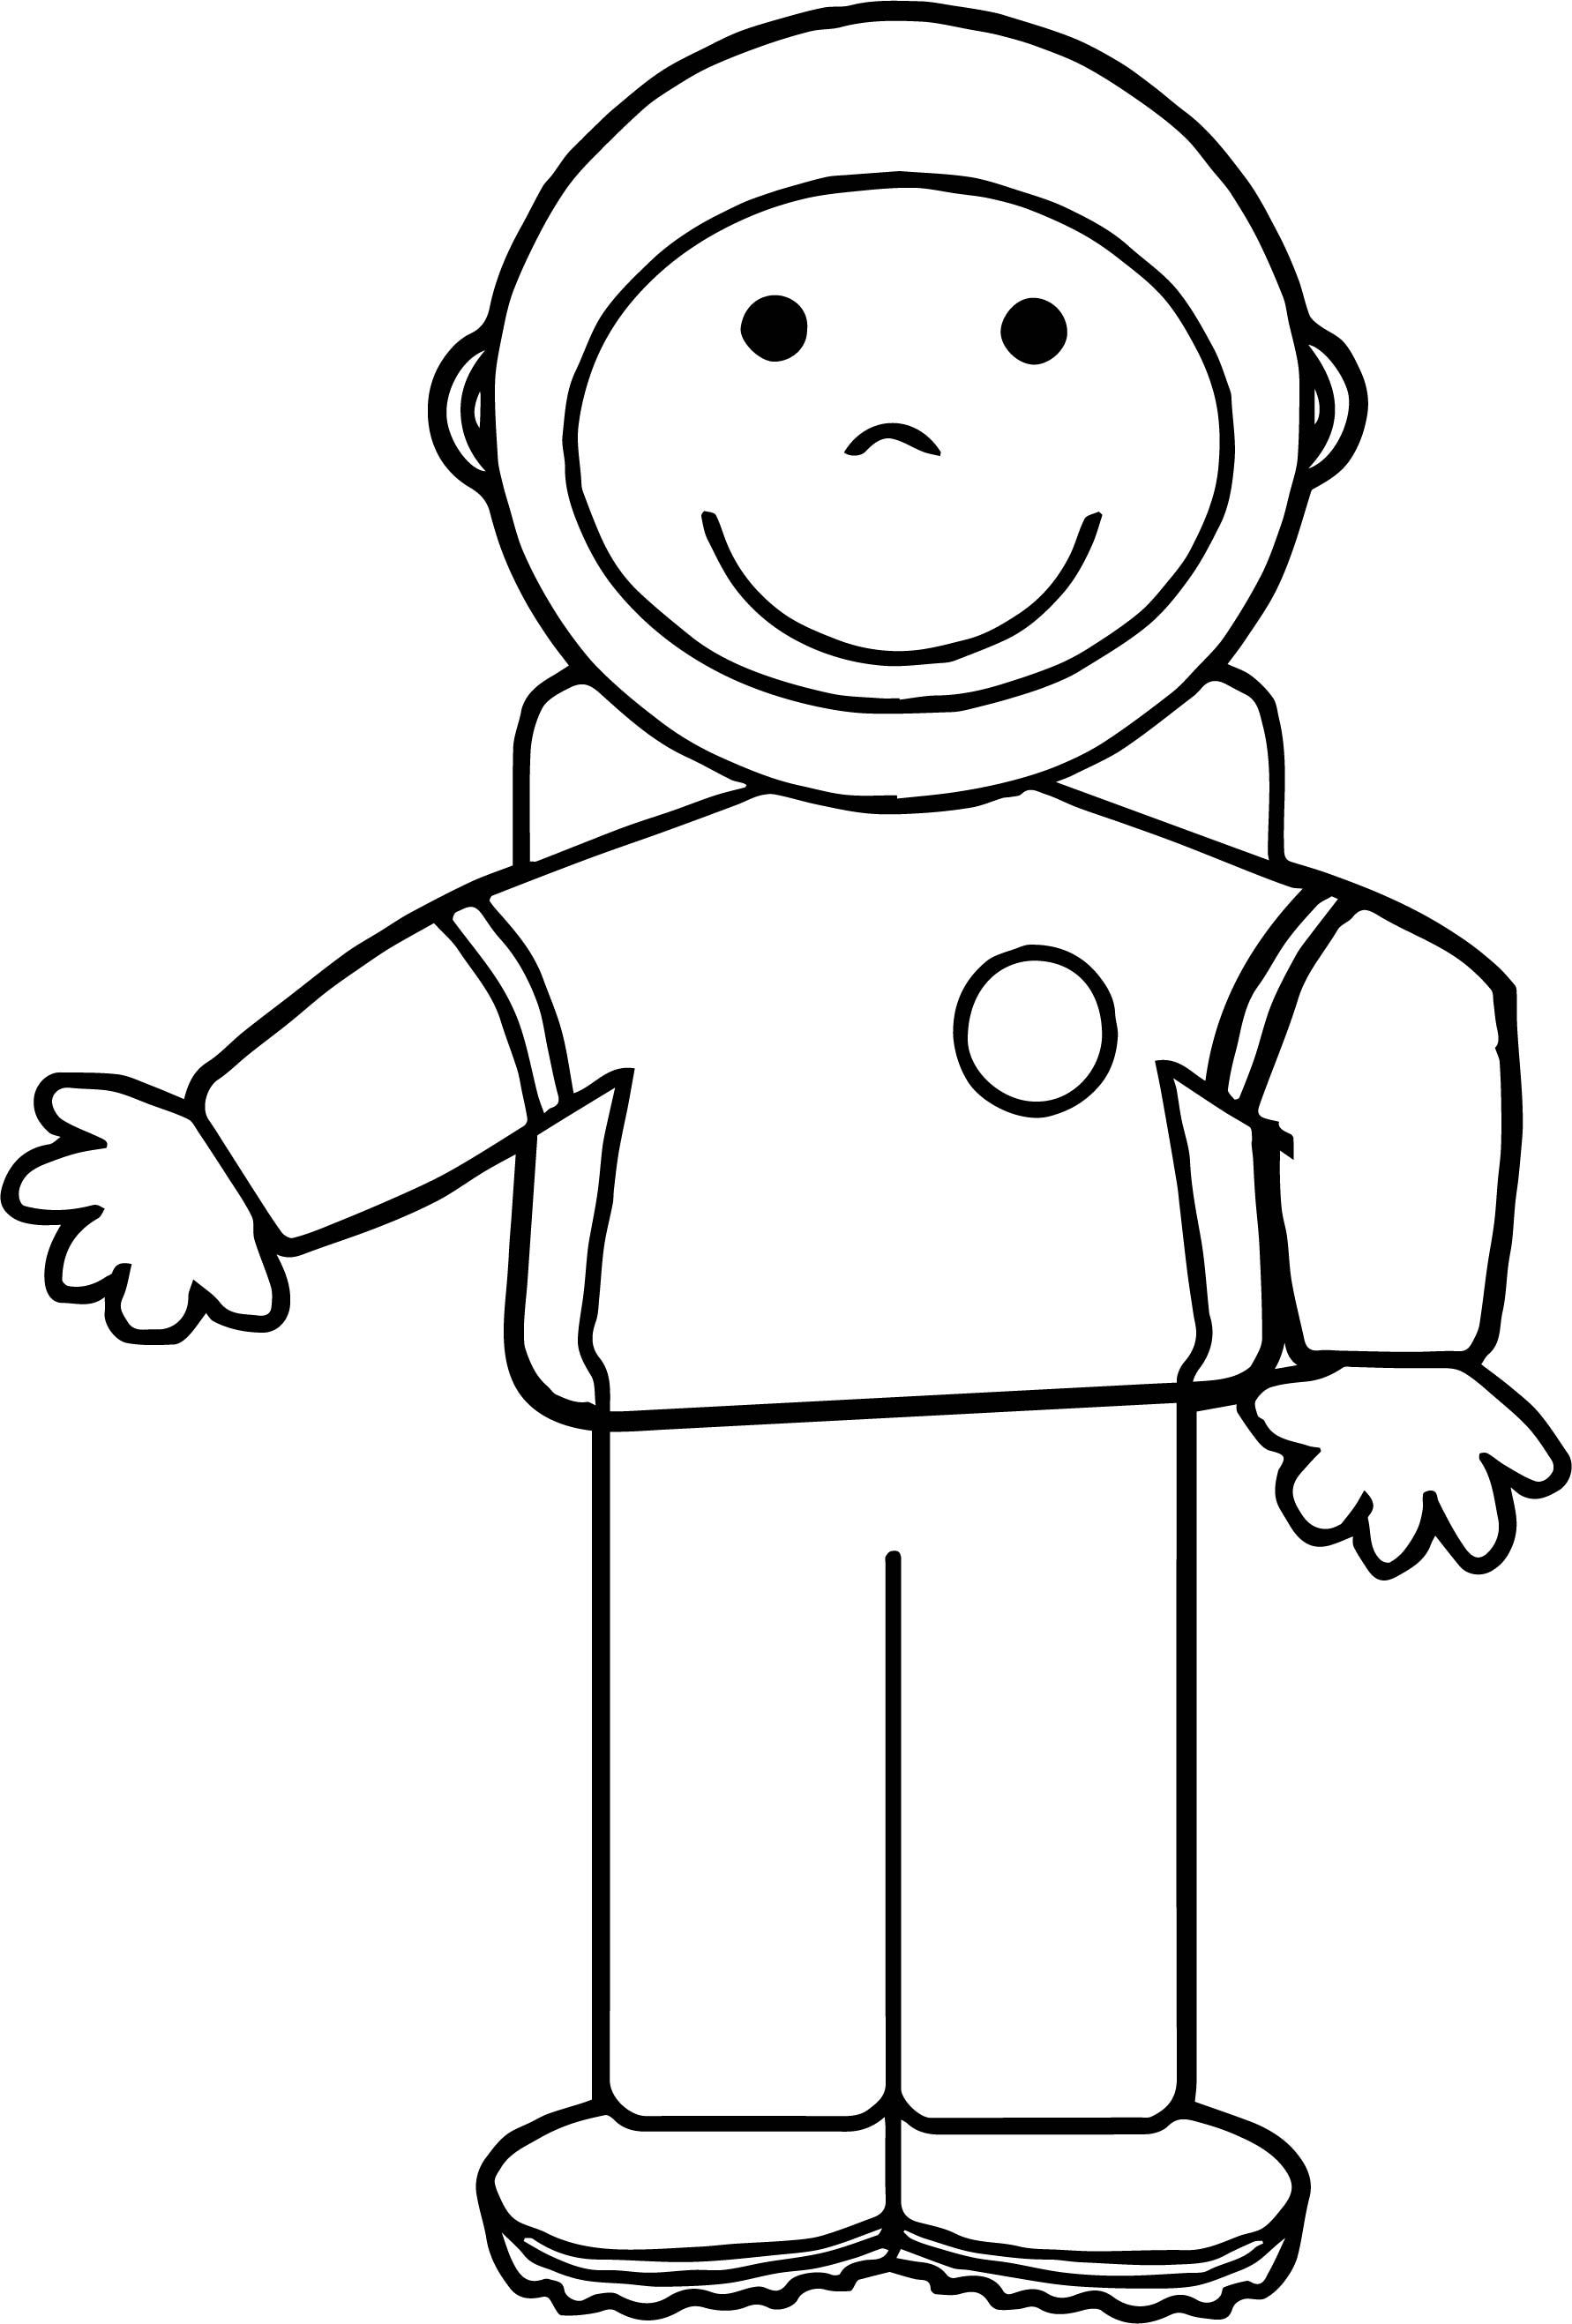 Kid Astronaut Coloring Page